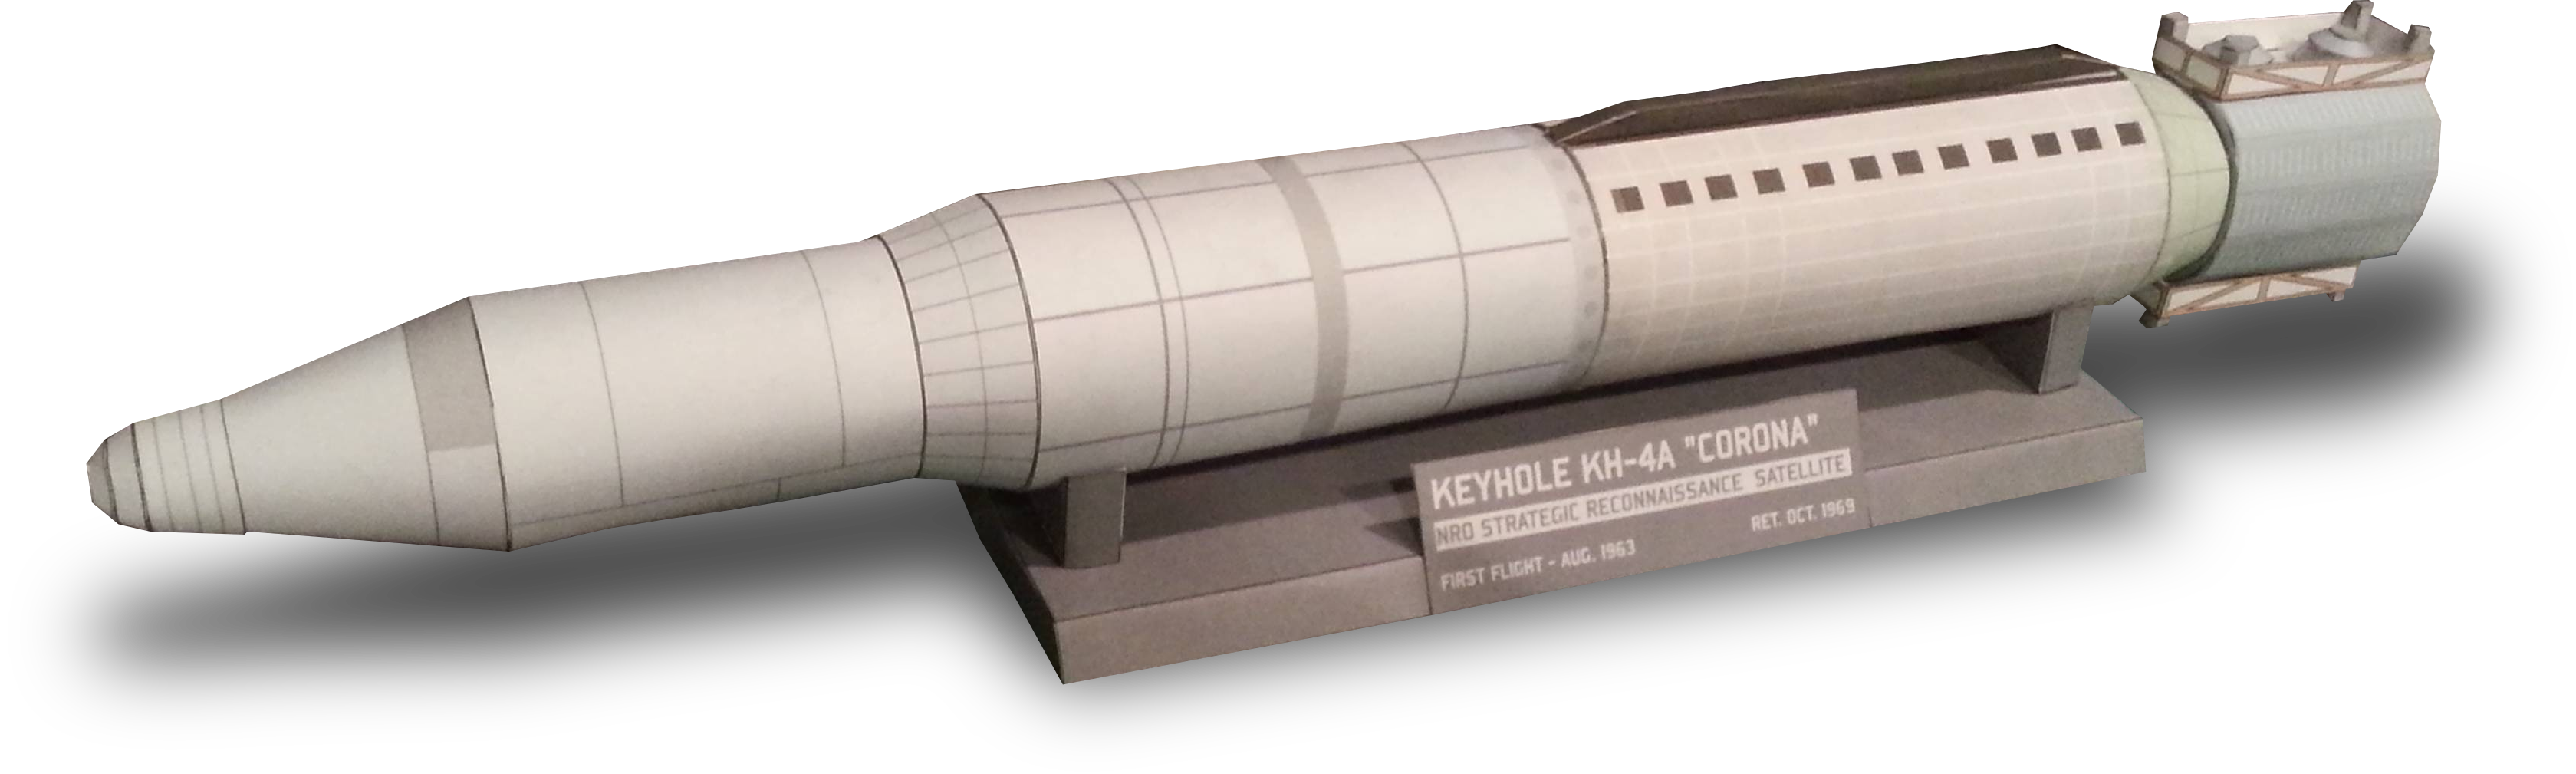 Corona Spy Satellite Papercraft by RocketmanTan